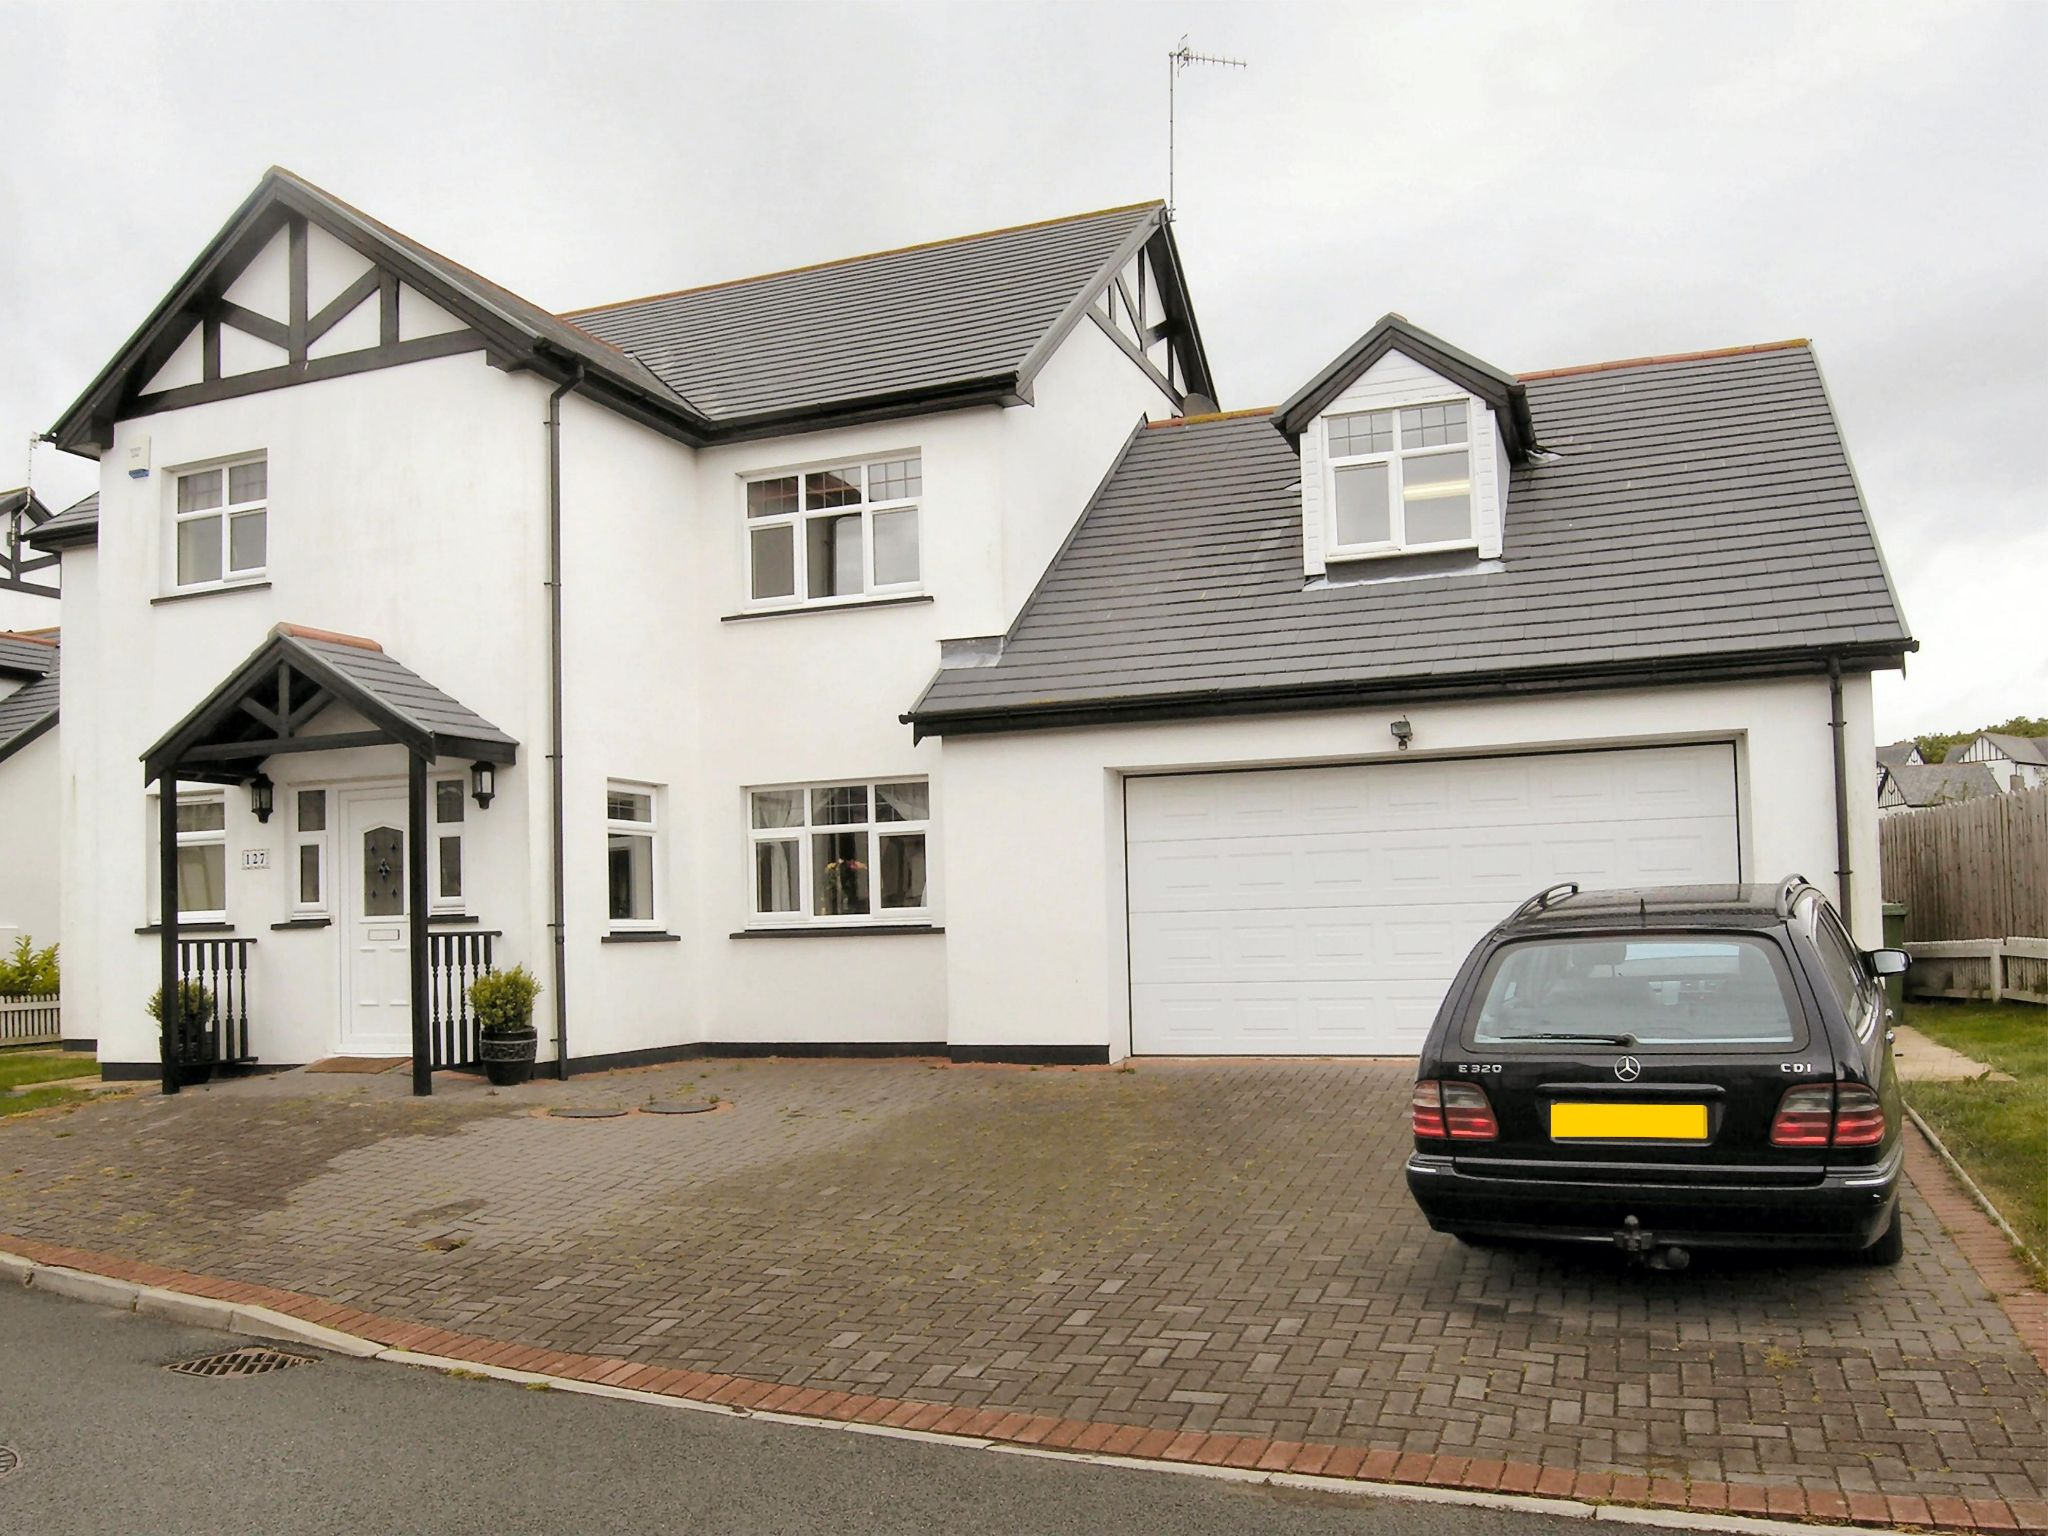 5 bedroom detached house Sold in Santon - Photograph 1